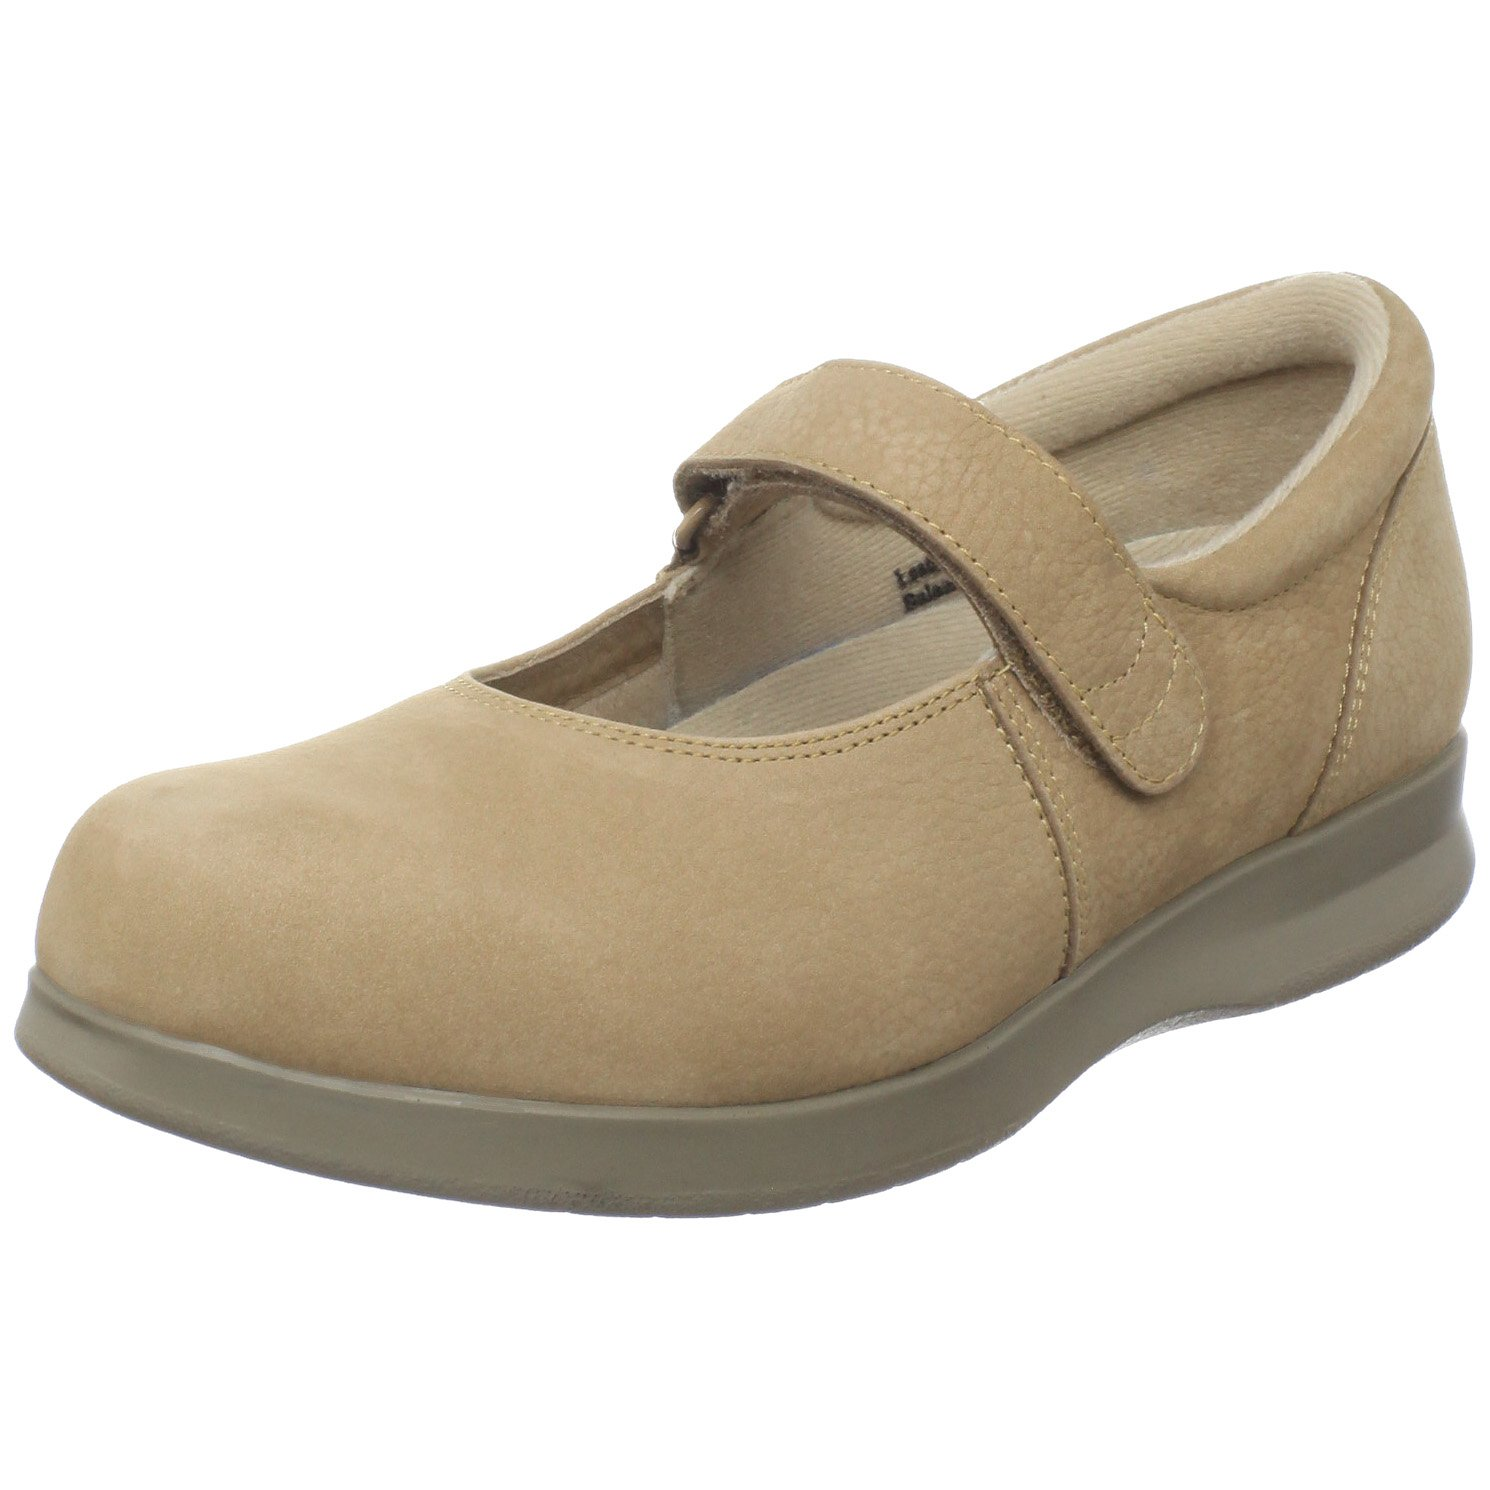 Drew Shoe Women's Bloom II B000KPI8WW 7.5 XW US|Taupe Nubuck